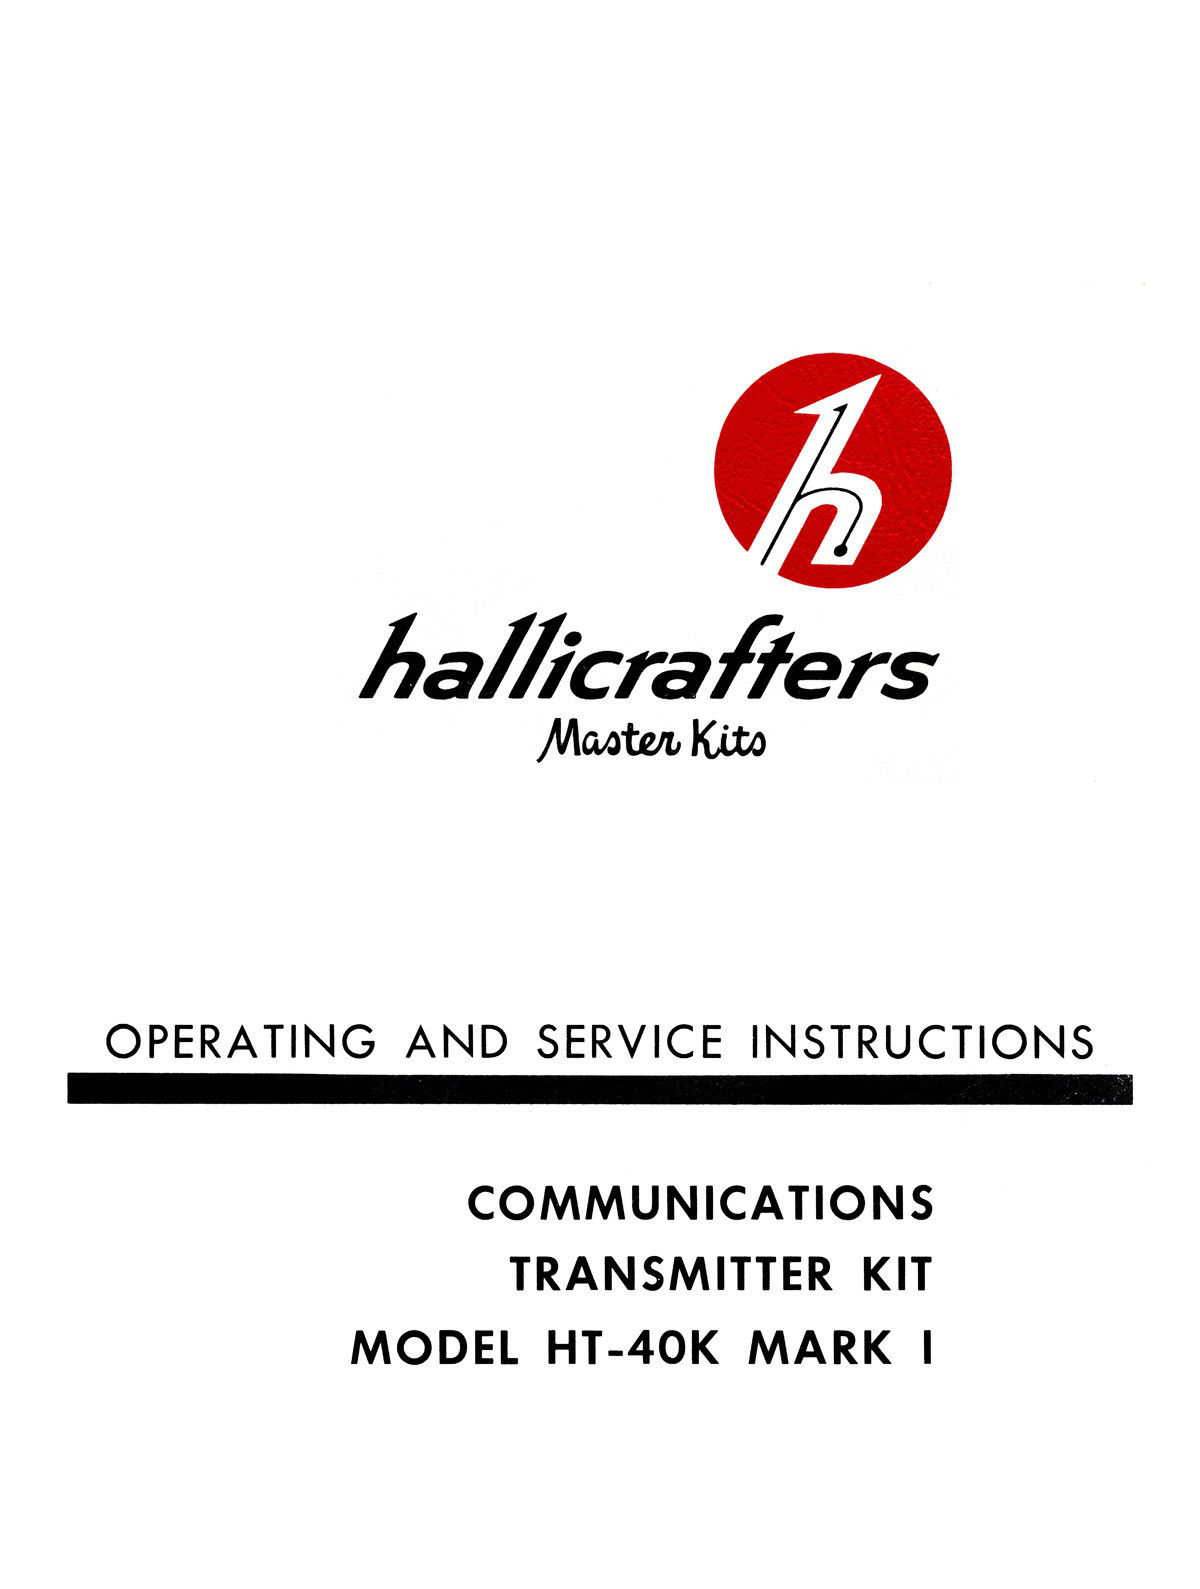 Hallicrafters HT-40K MK I Transmitter Kit Manual